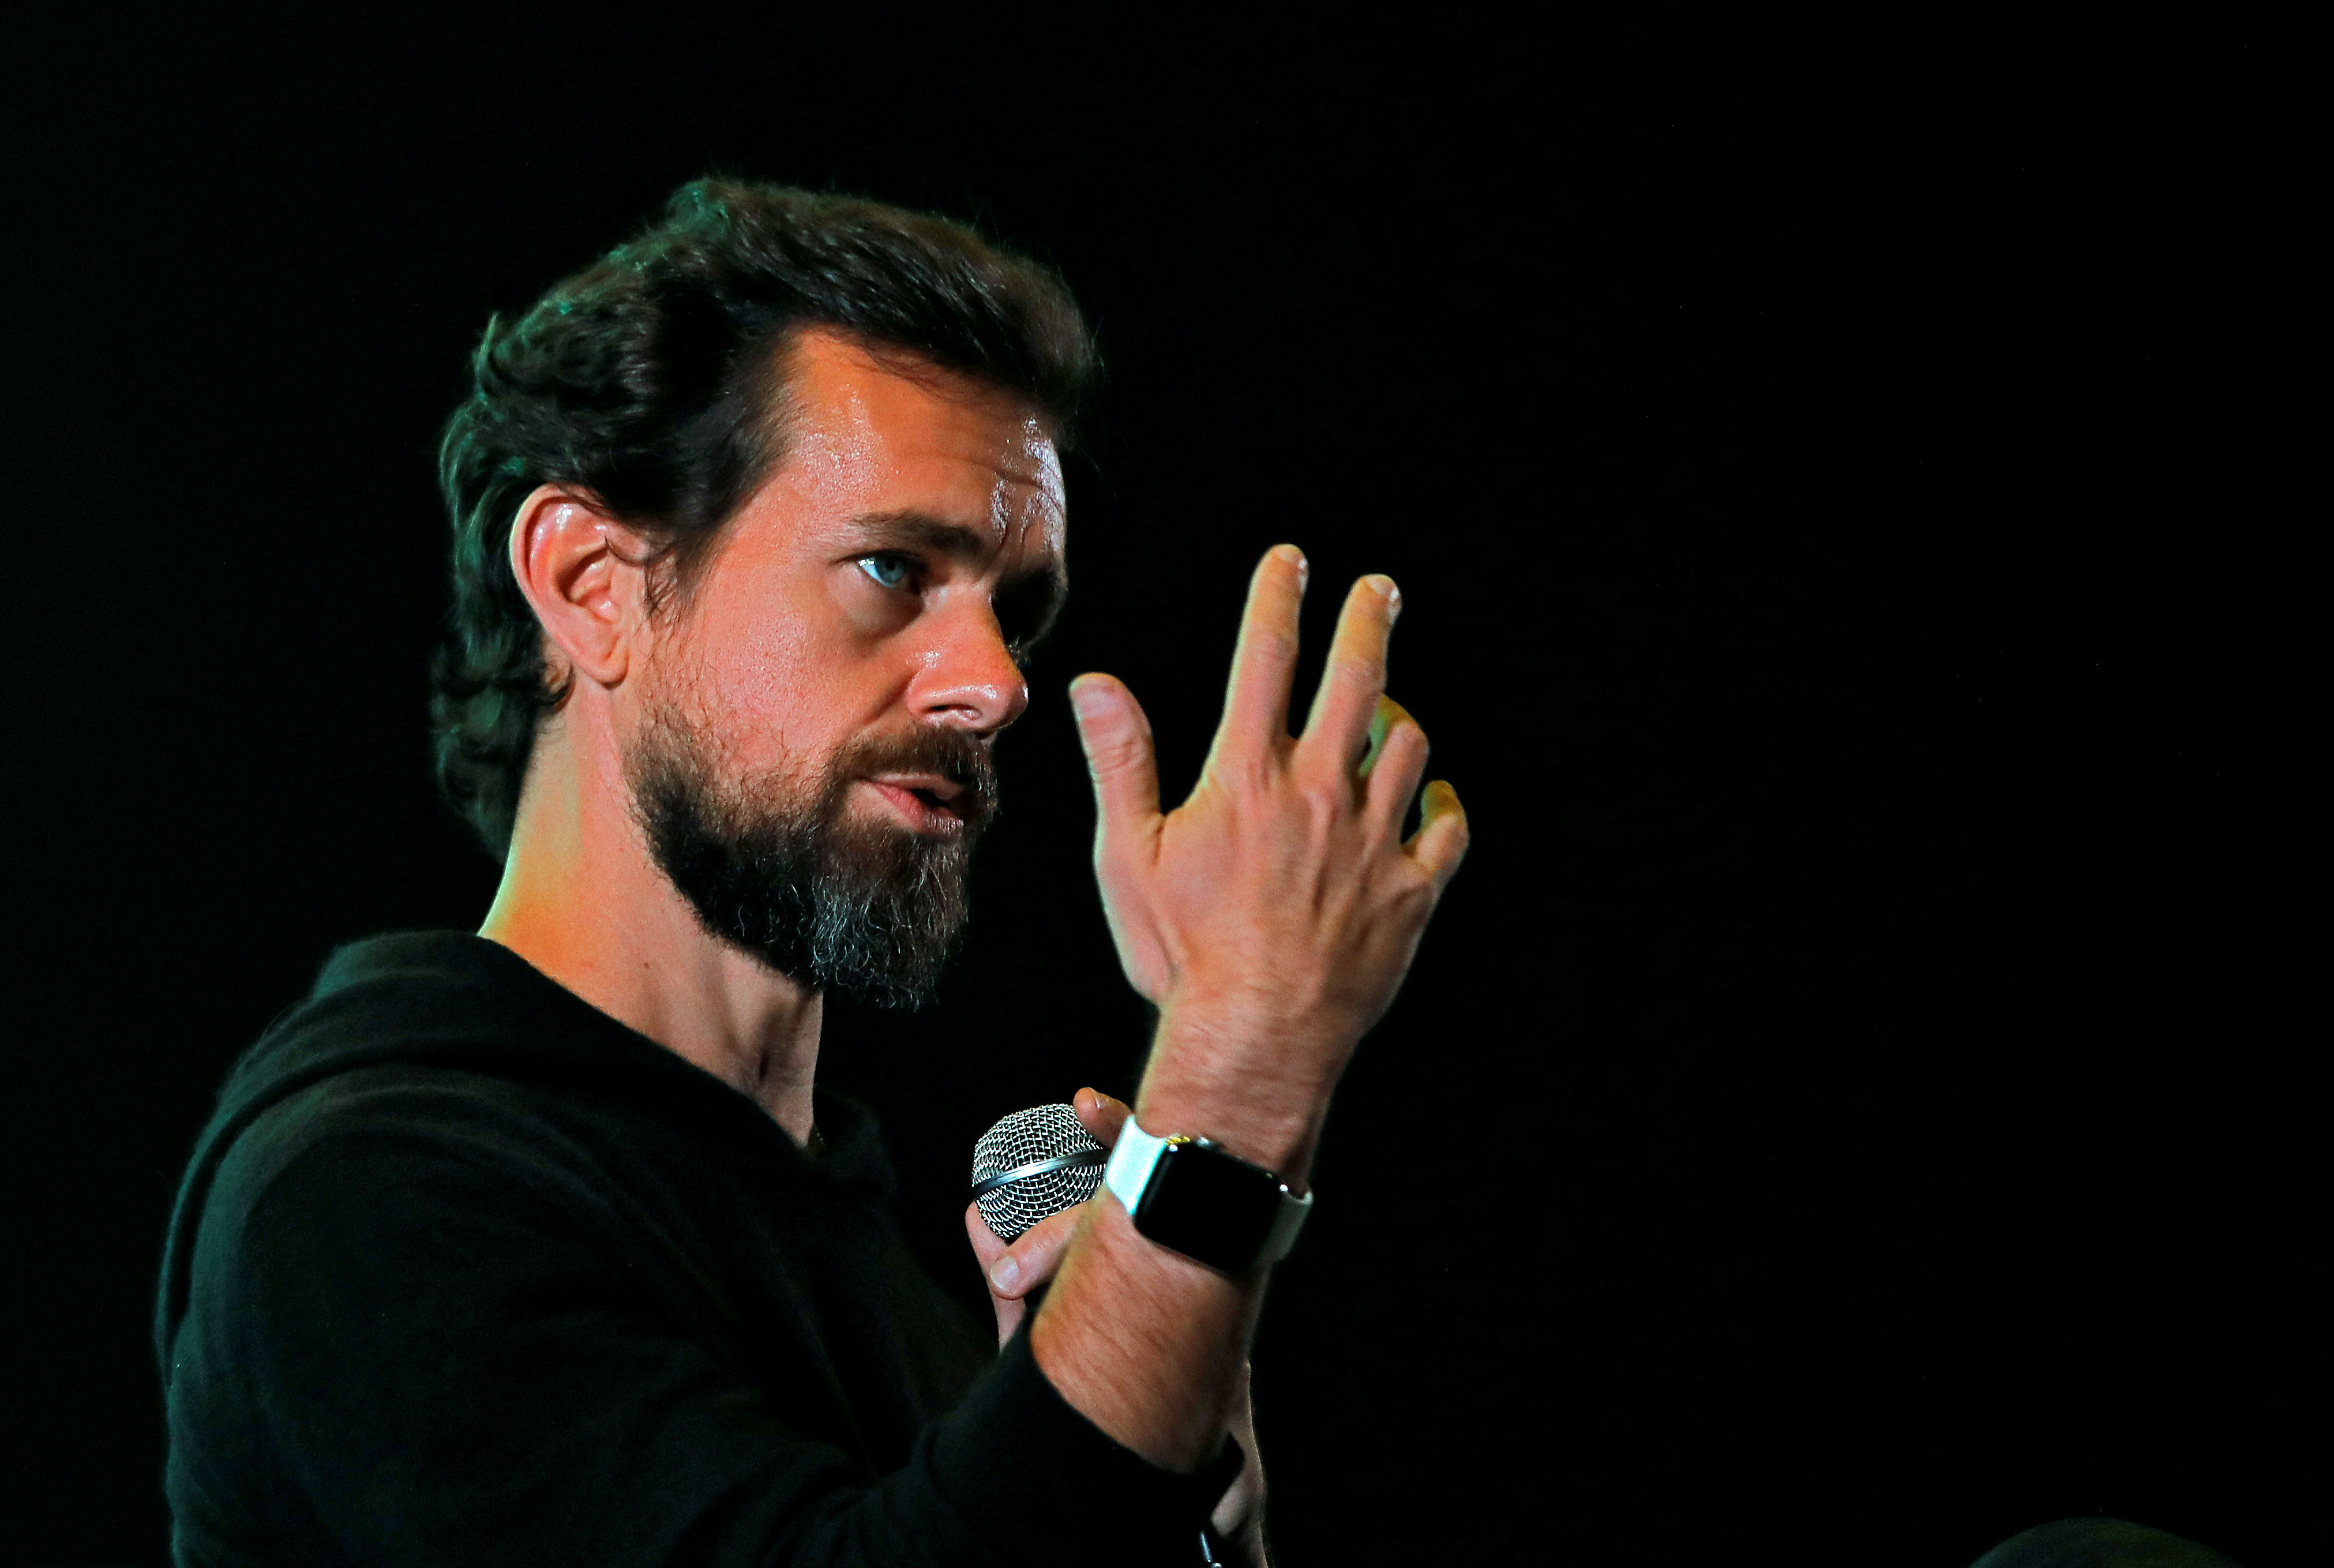 Twitter CEO Jack Dorsey addresses students during a town hall at the Indian Institute of Technology (IIT) in New Delhi, India, November 12, 2018. REUTERS/Anushree Fadnavis/File Photo